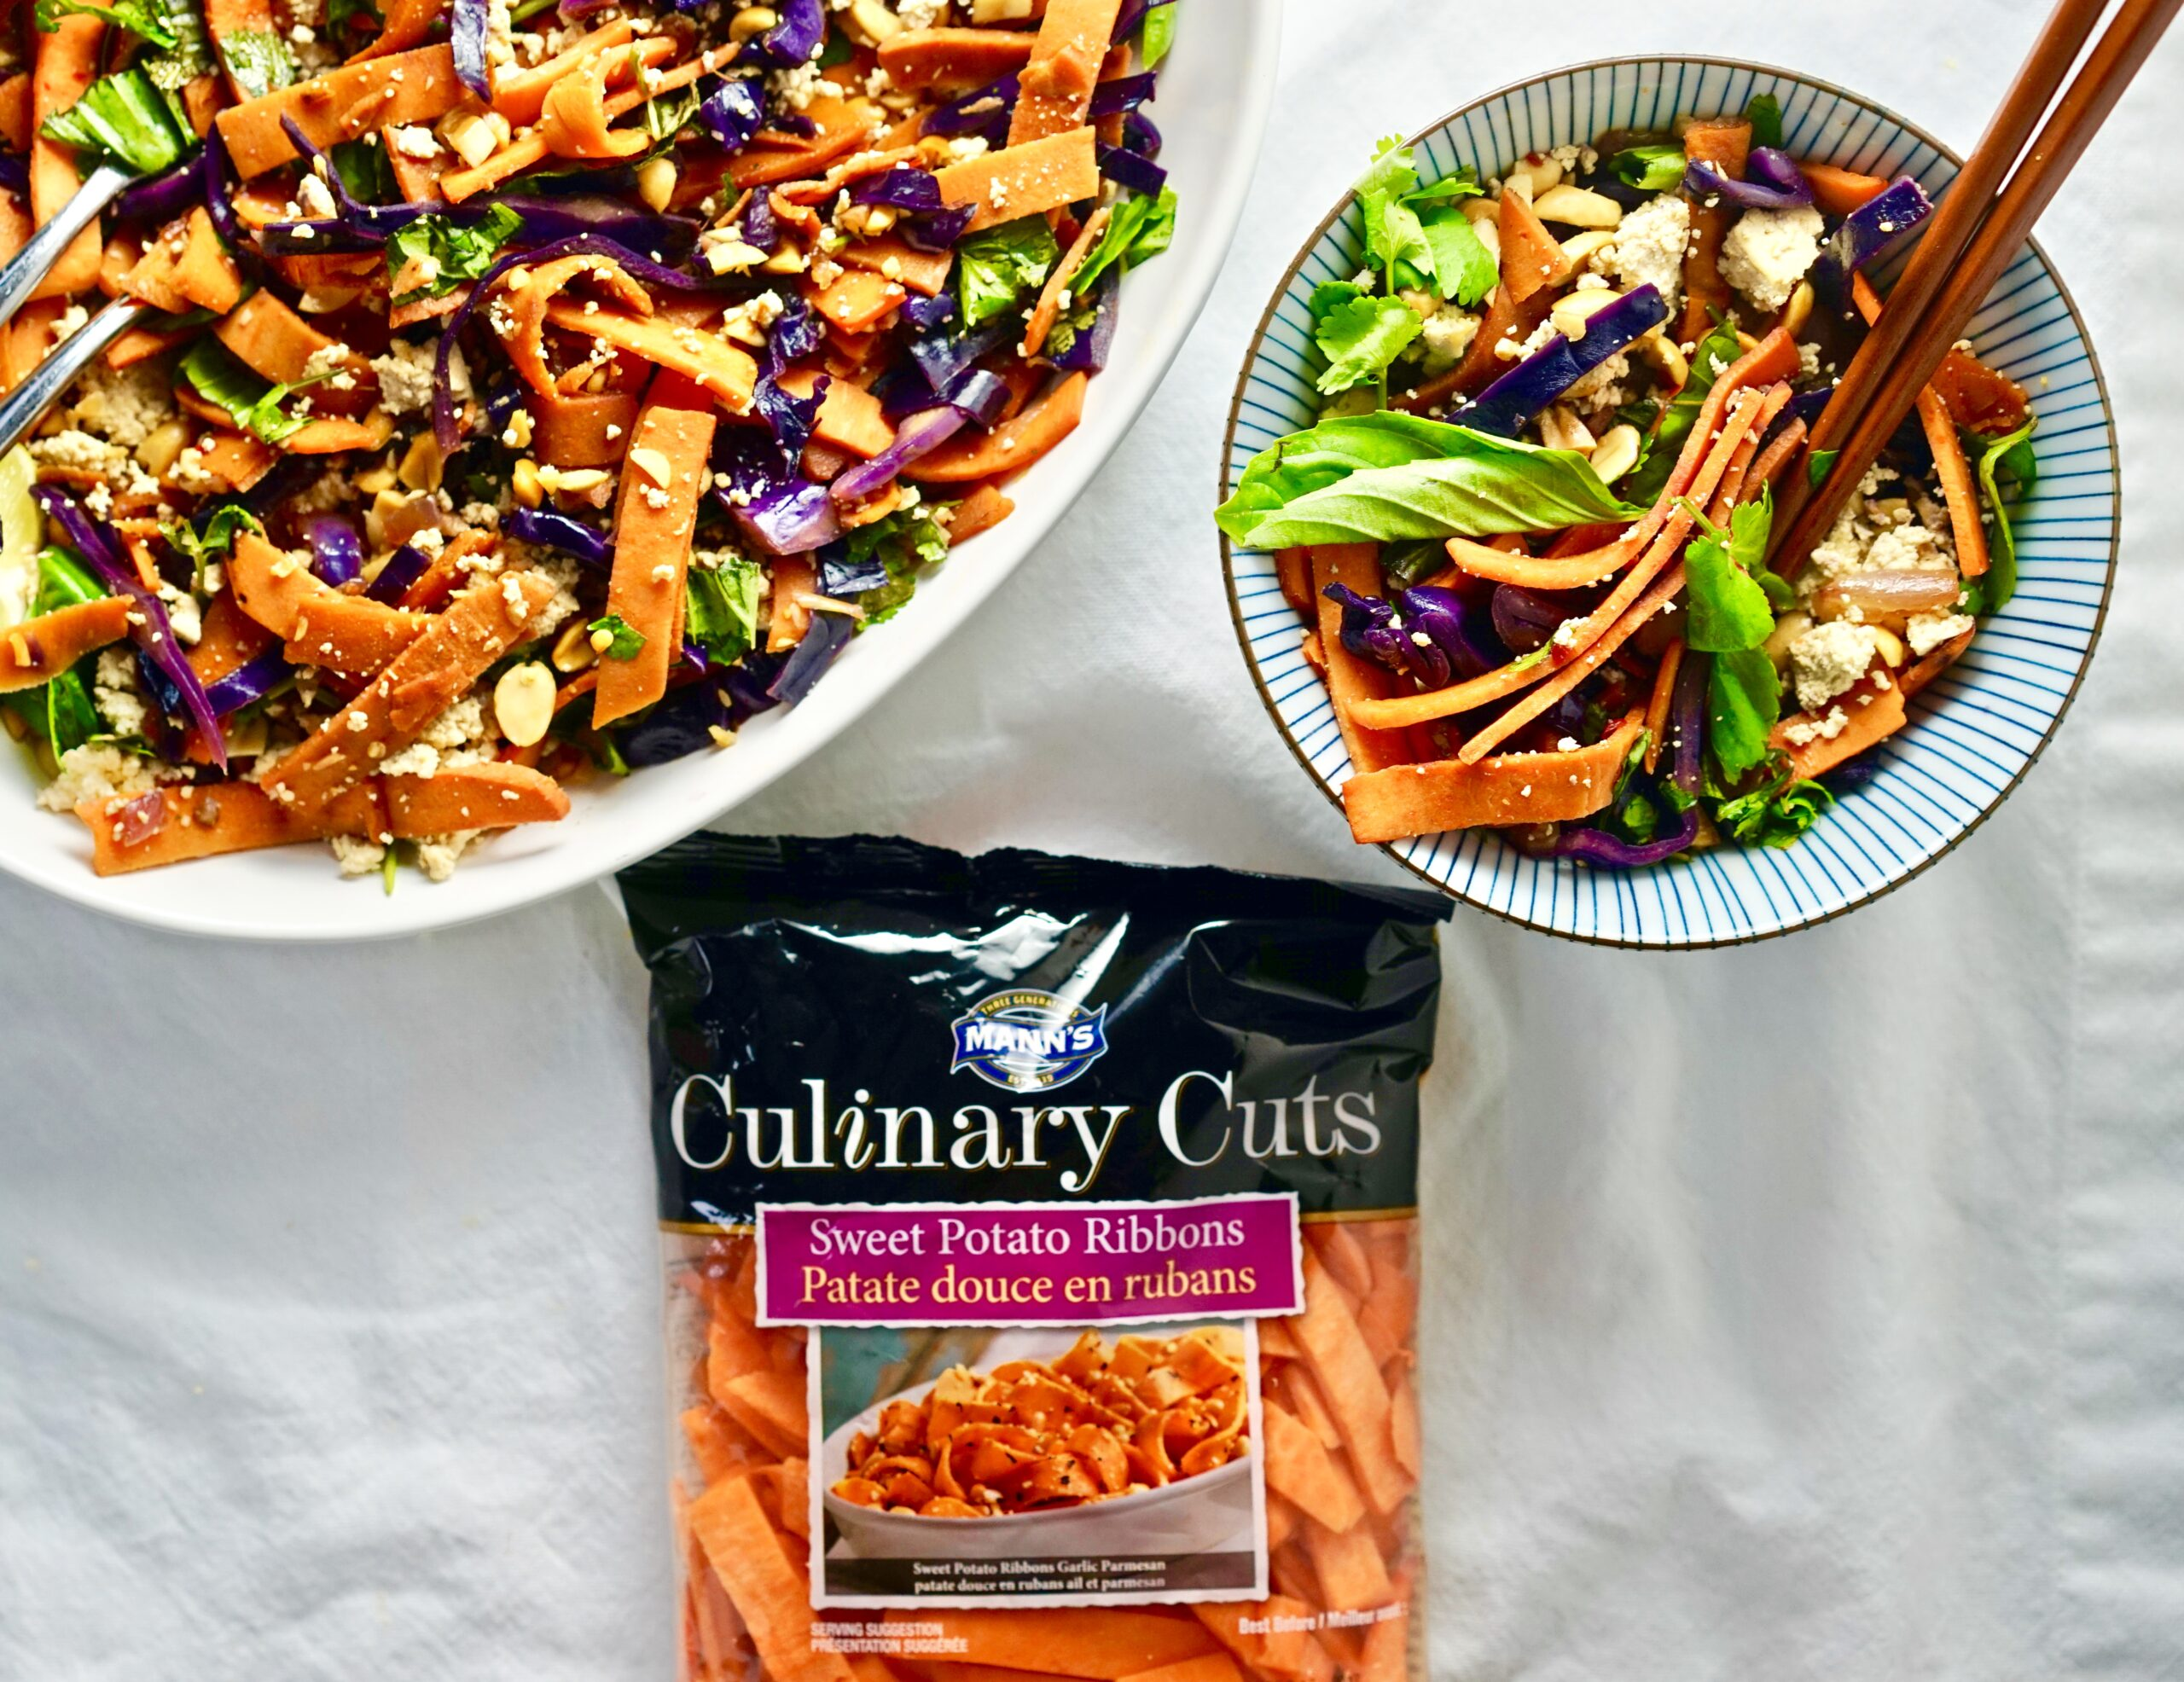 Sweet potato pad thai recipe fun shapes that can replace a lot of the refined carbs in your diet and they can be steamed in a few minutes right in the bag theyre packed in easy forumfinder Image collections